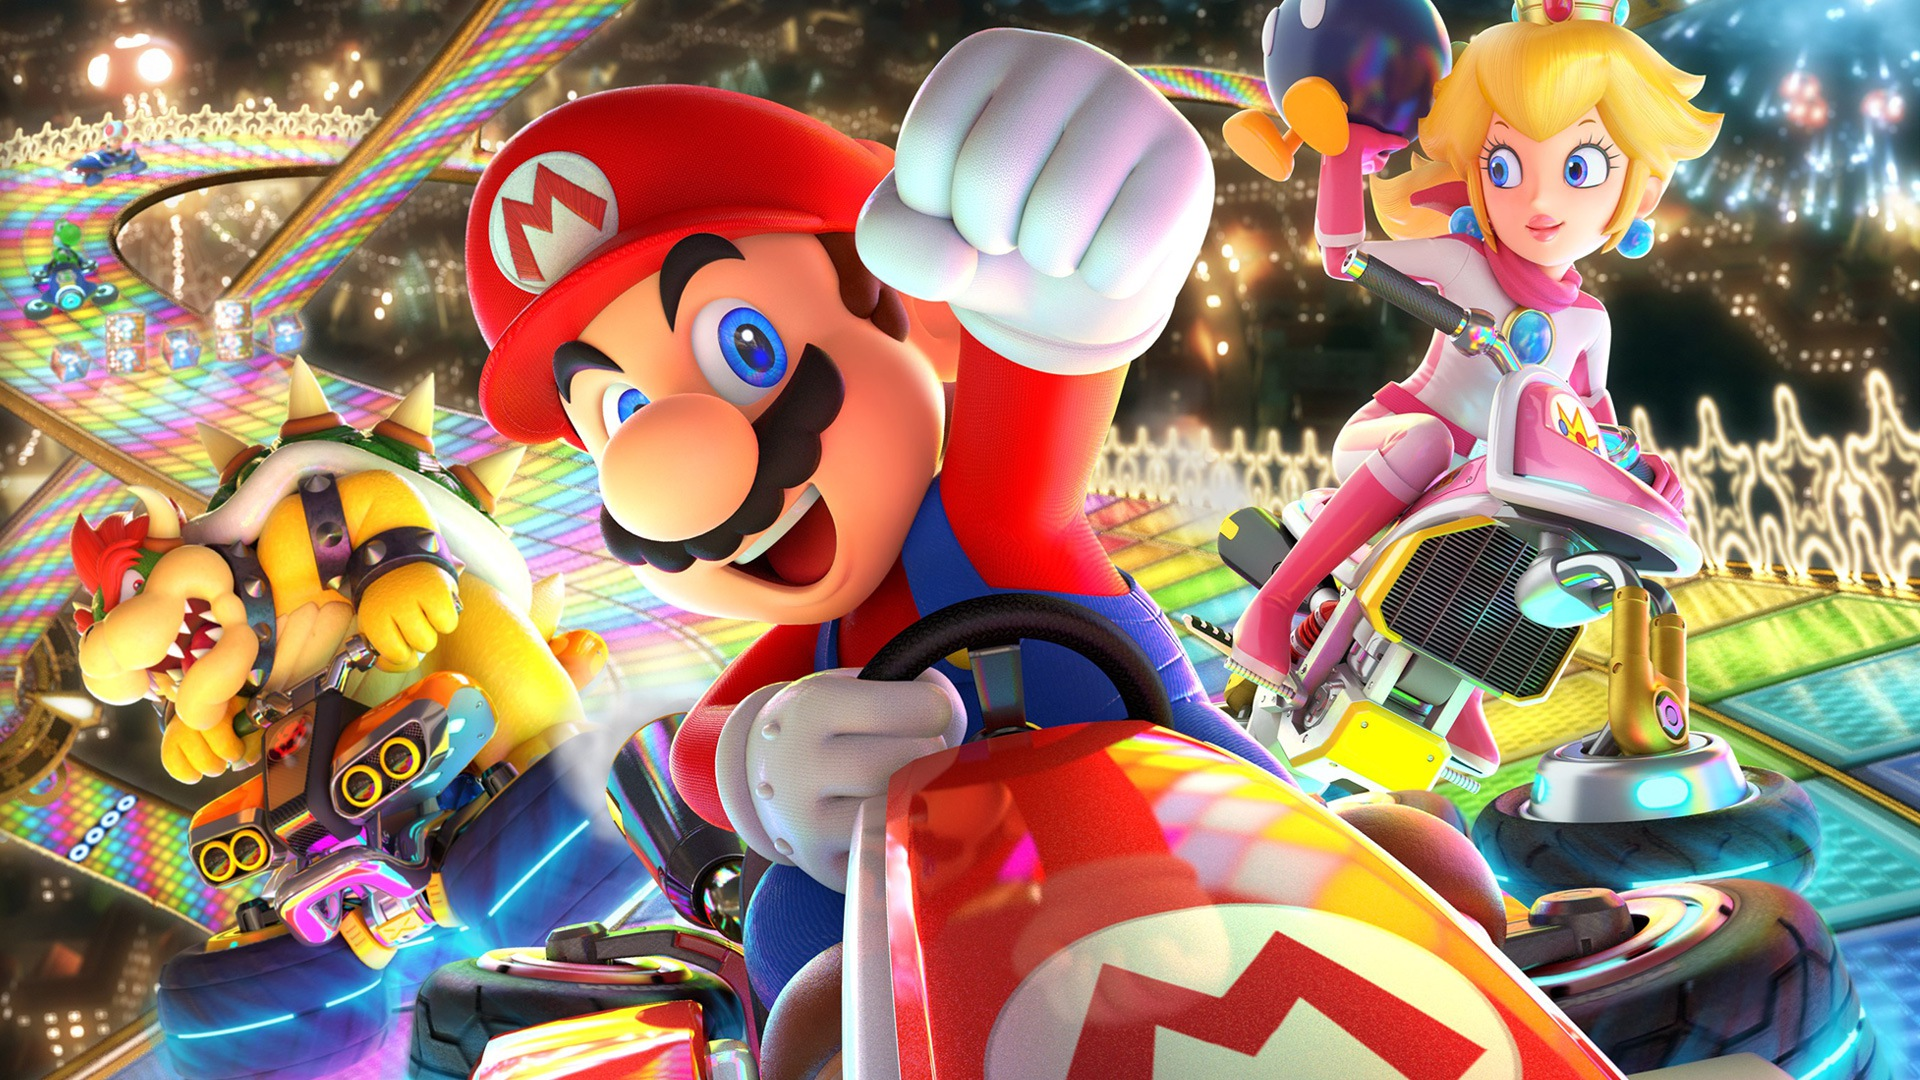 Nintendo delays the launch of Mario Kart Tour for mobiles